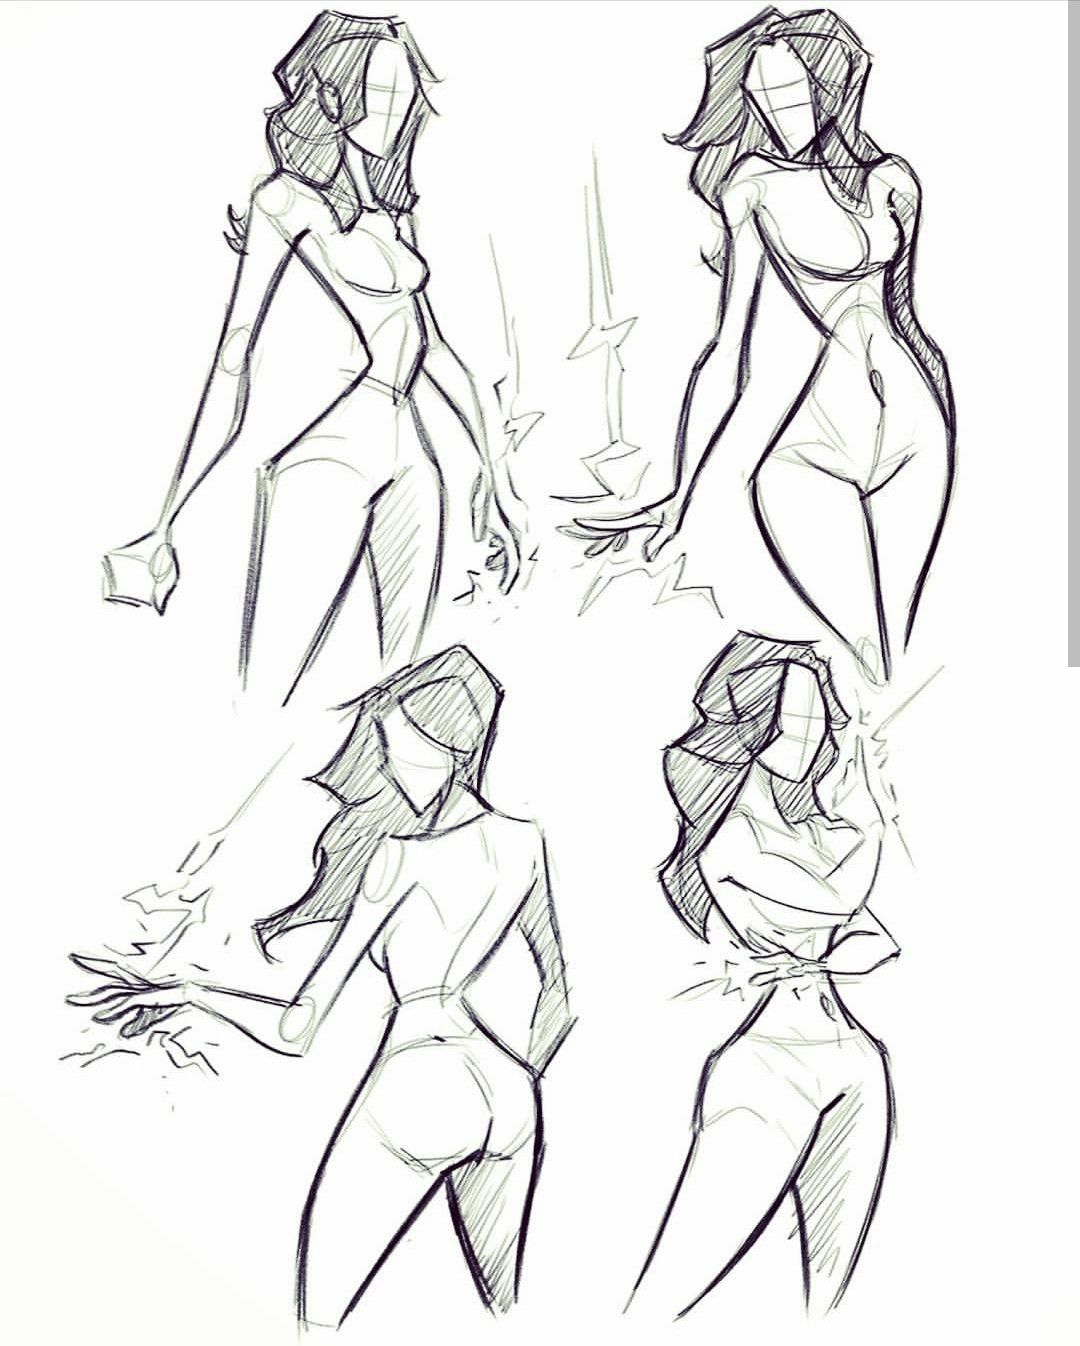 Pin By Carrie White On D D Art Reference Poses Drawing Reference Poses Figure Drawing